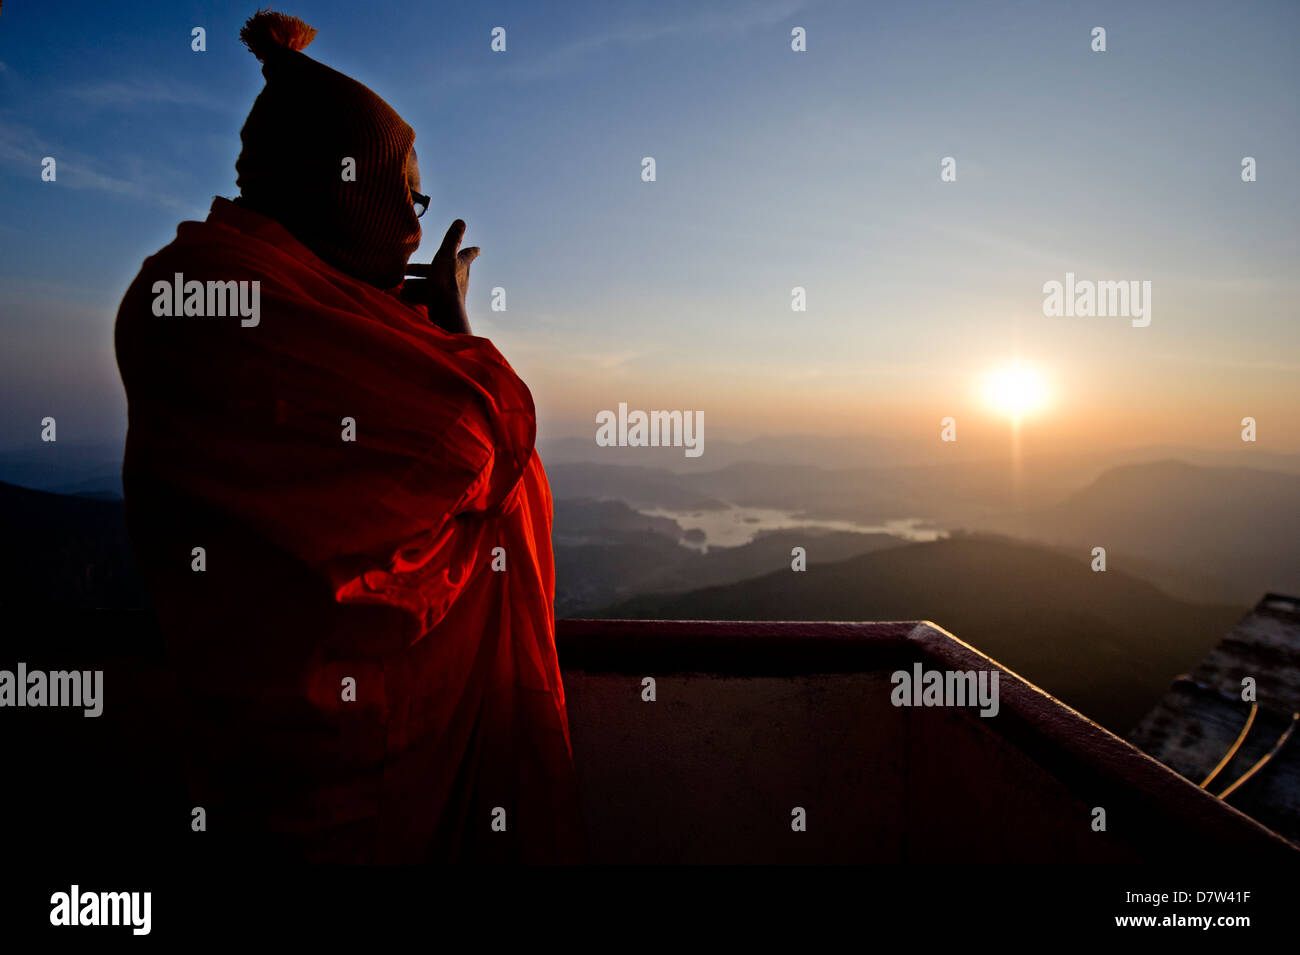 A monk looks out over a sunrise from the top of the sacred mountain Sri Pada (Adam's Peak), Sri Lanka - Stock Image